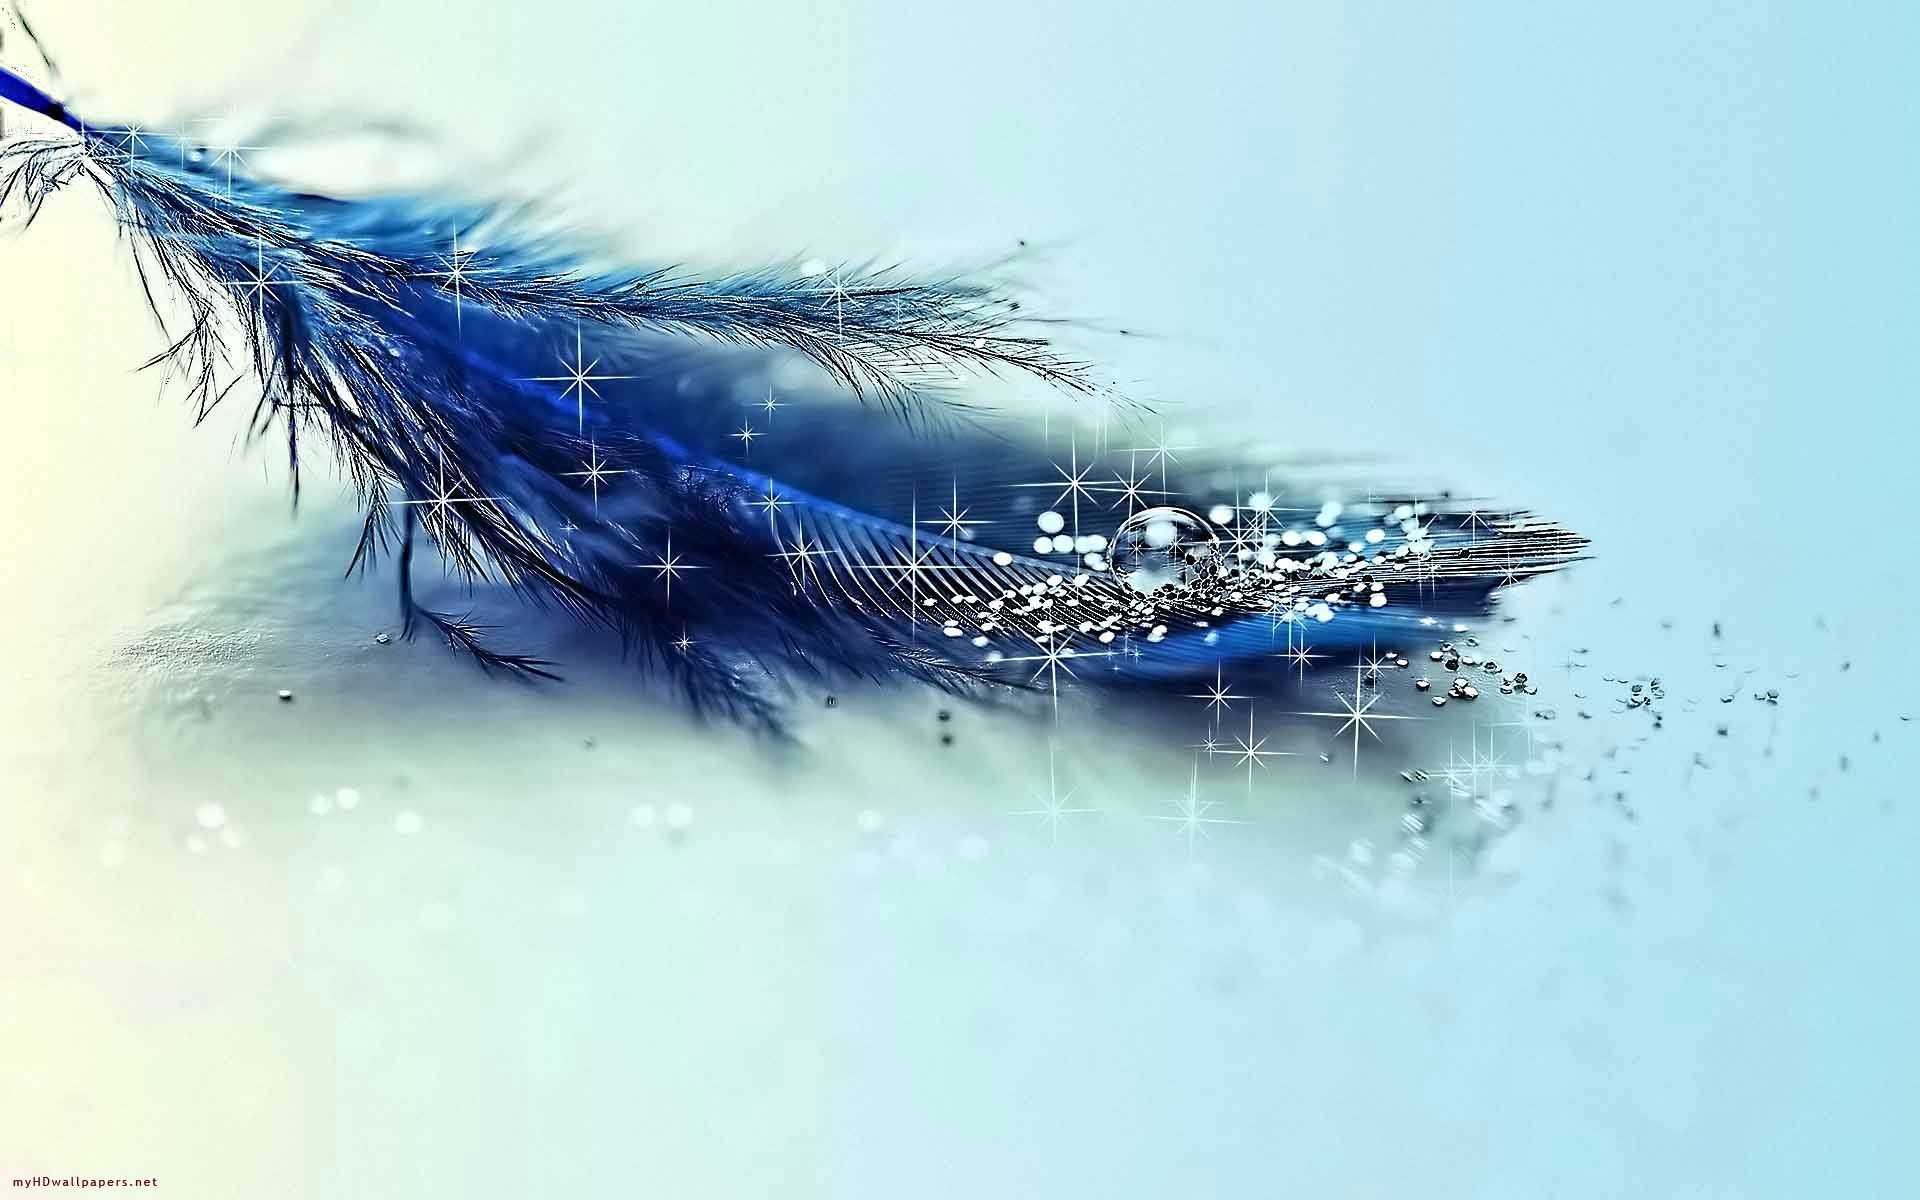 Free Magic Desktop Wallpaper Hd Wallpapers Download And New 3d Blue Feather Cool Blue Wallpaper Pictures